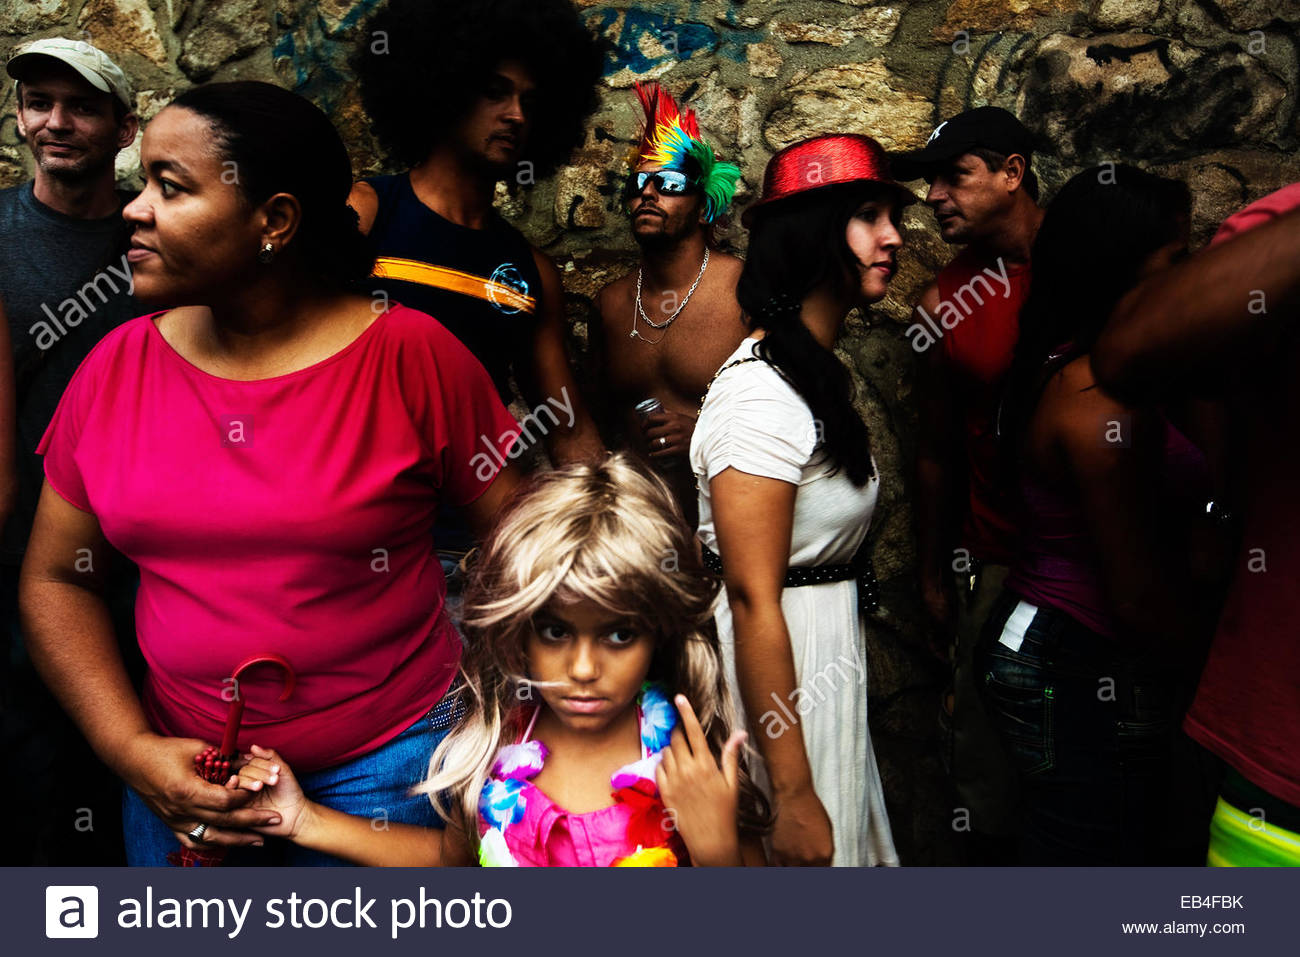 A young girl wearing a wig during Brazil's annual Carnival celebration in Rio de Janeiro. - Stock Image